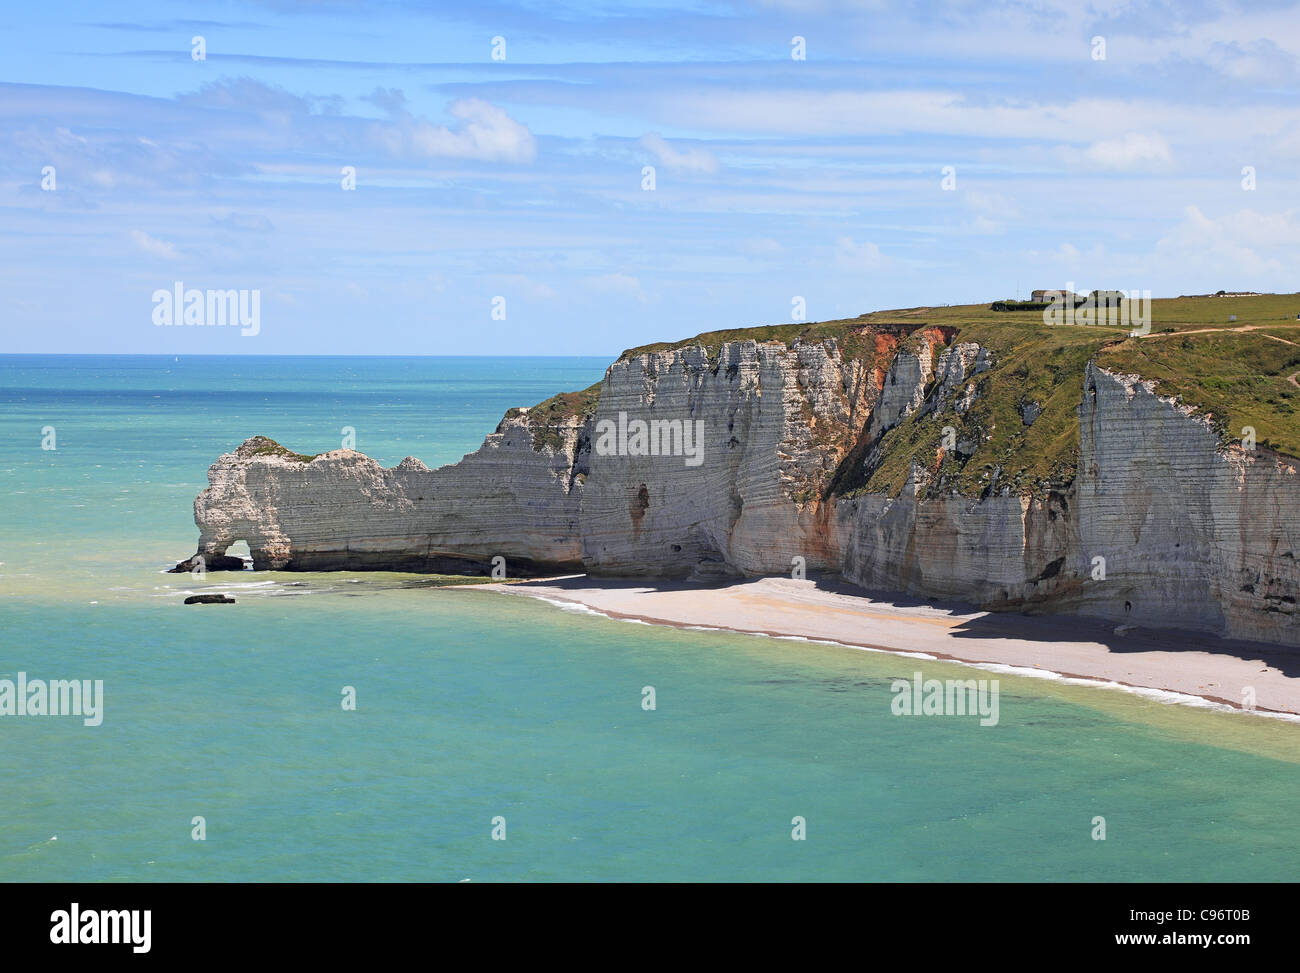 La Falaise d'Amont in Etretat on the Upper Normandy coast in the North of France. - Stock Image